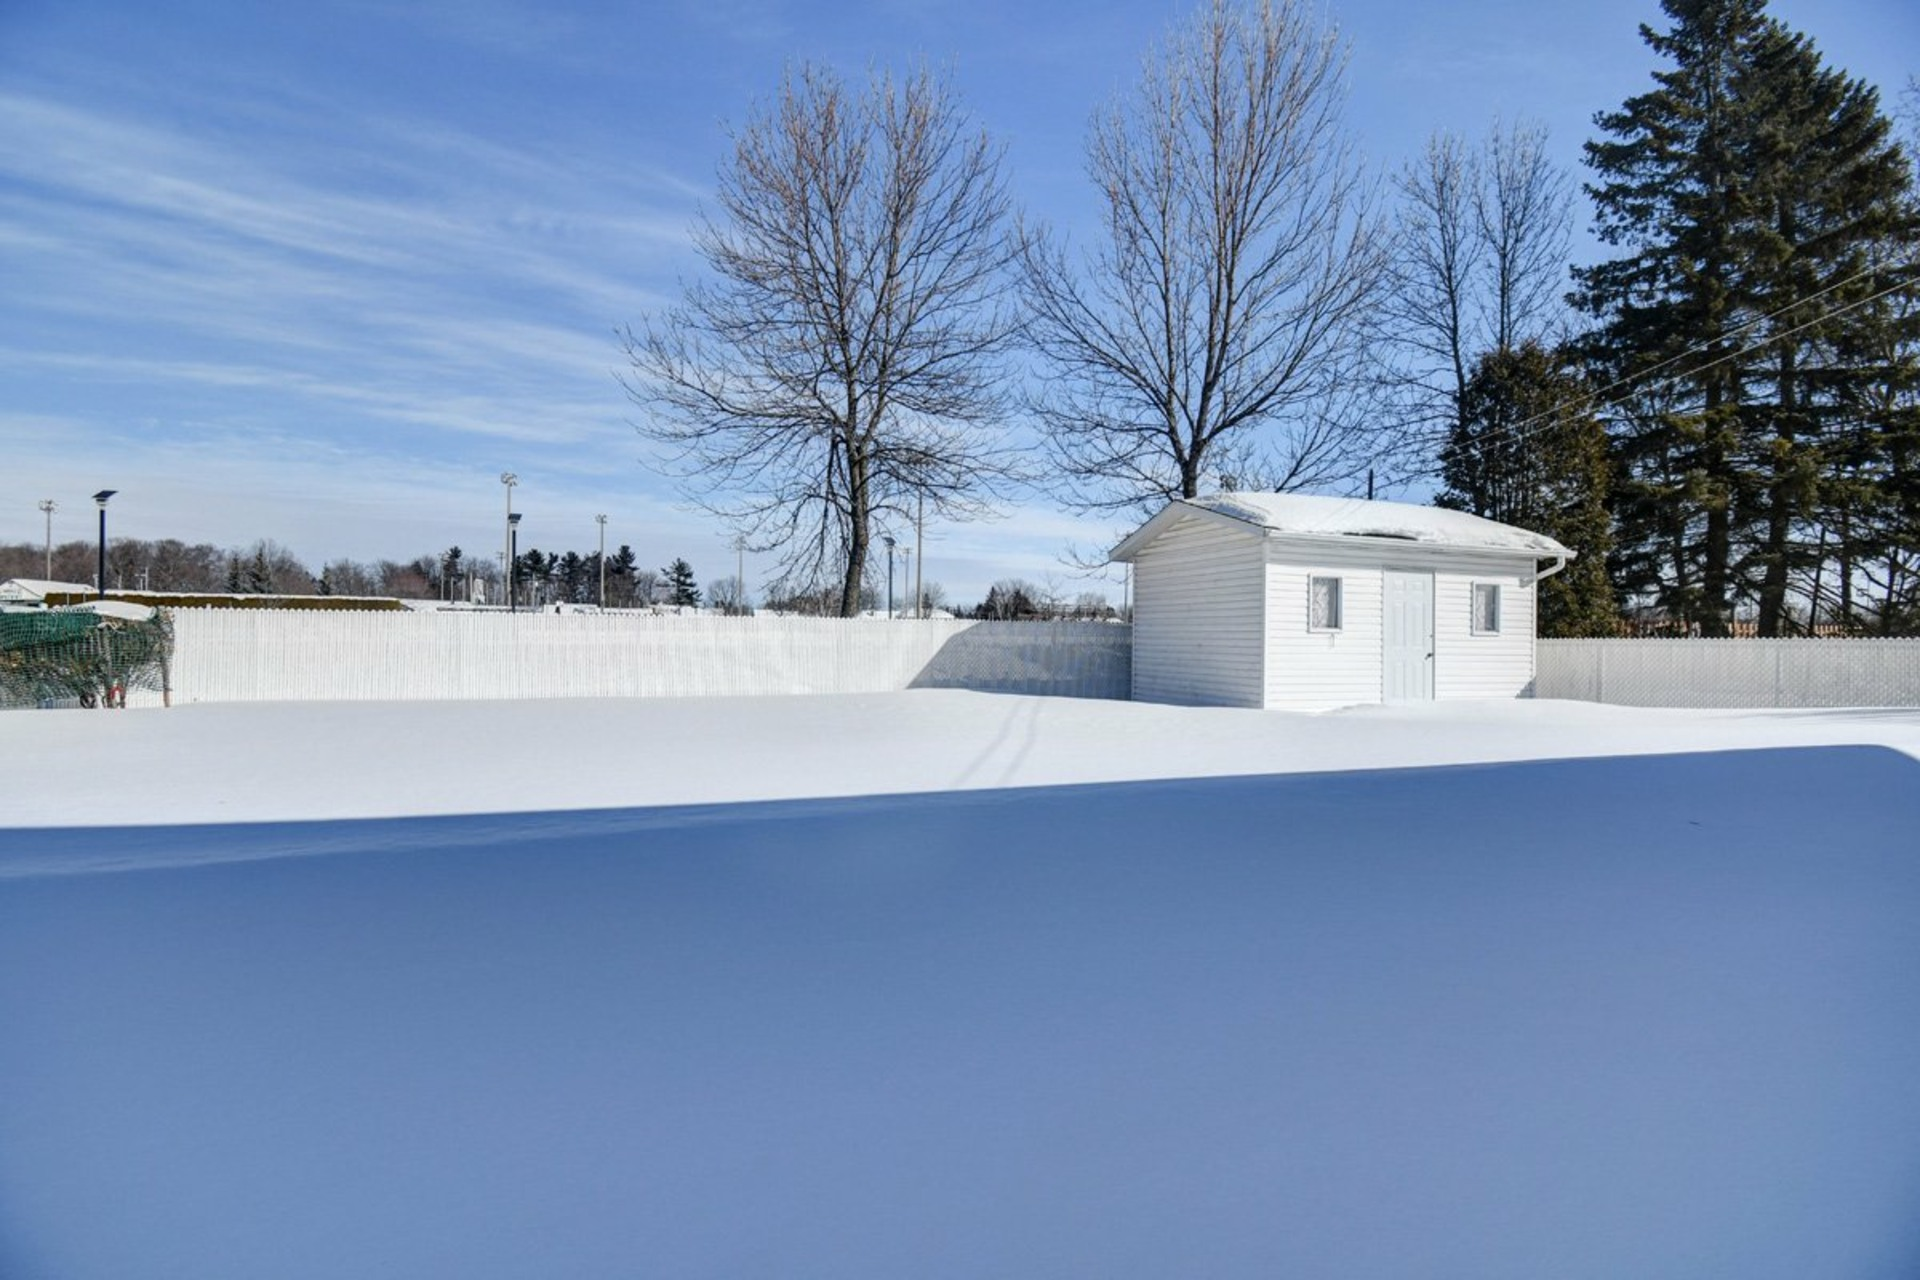 image 4 - House For sale Shawinigan - 9 rooms